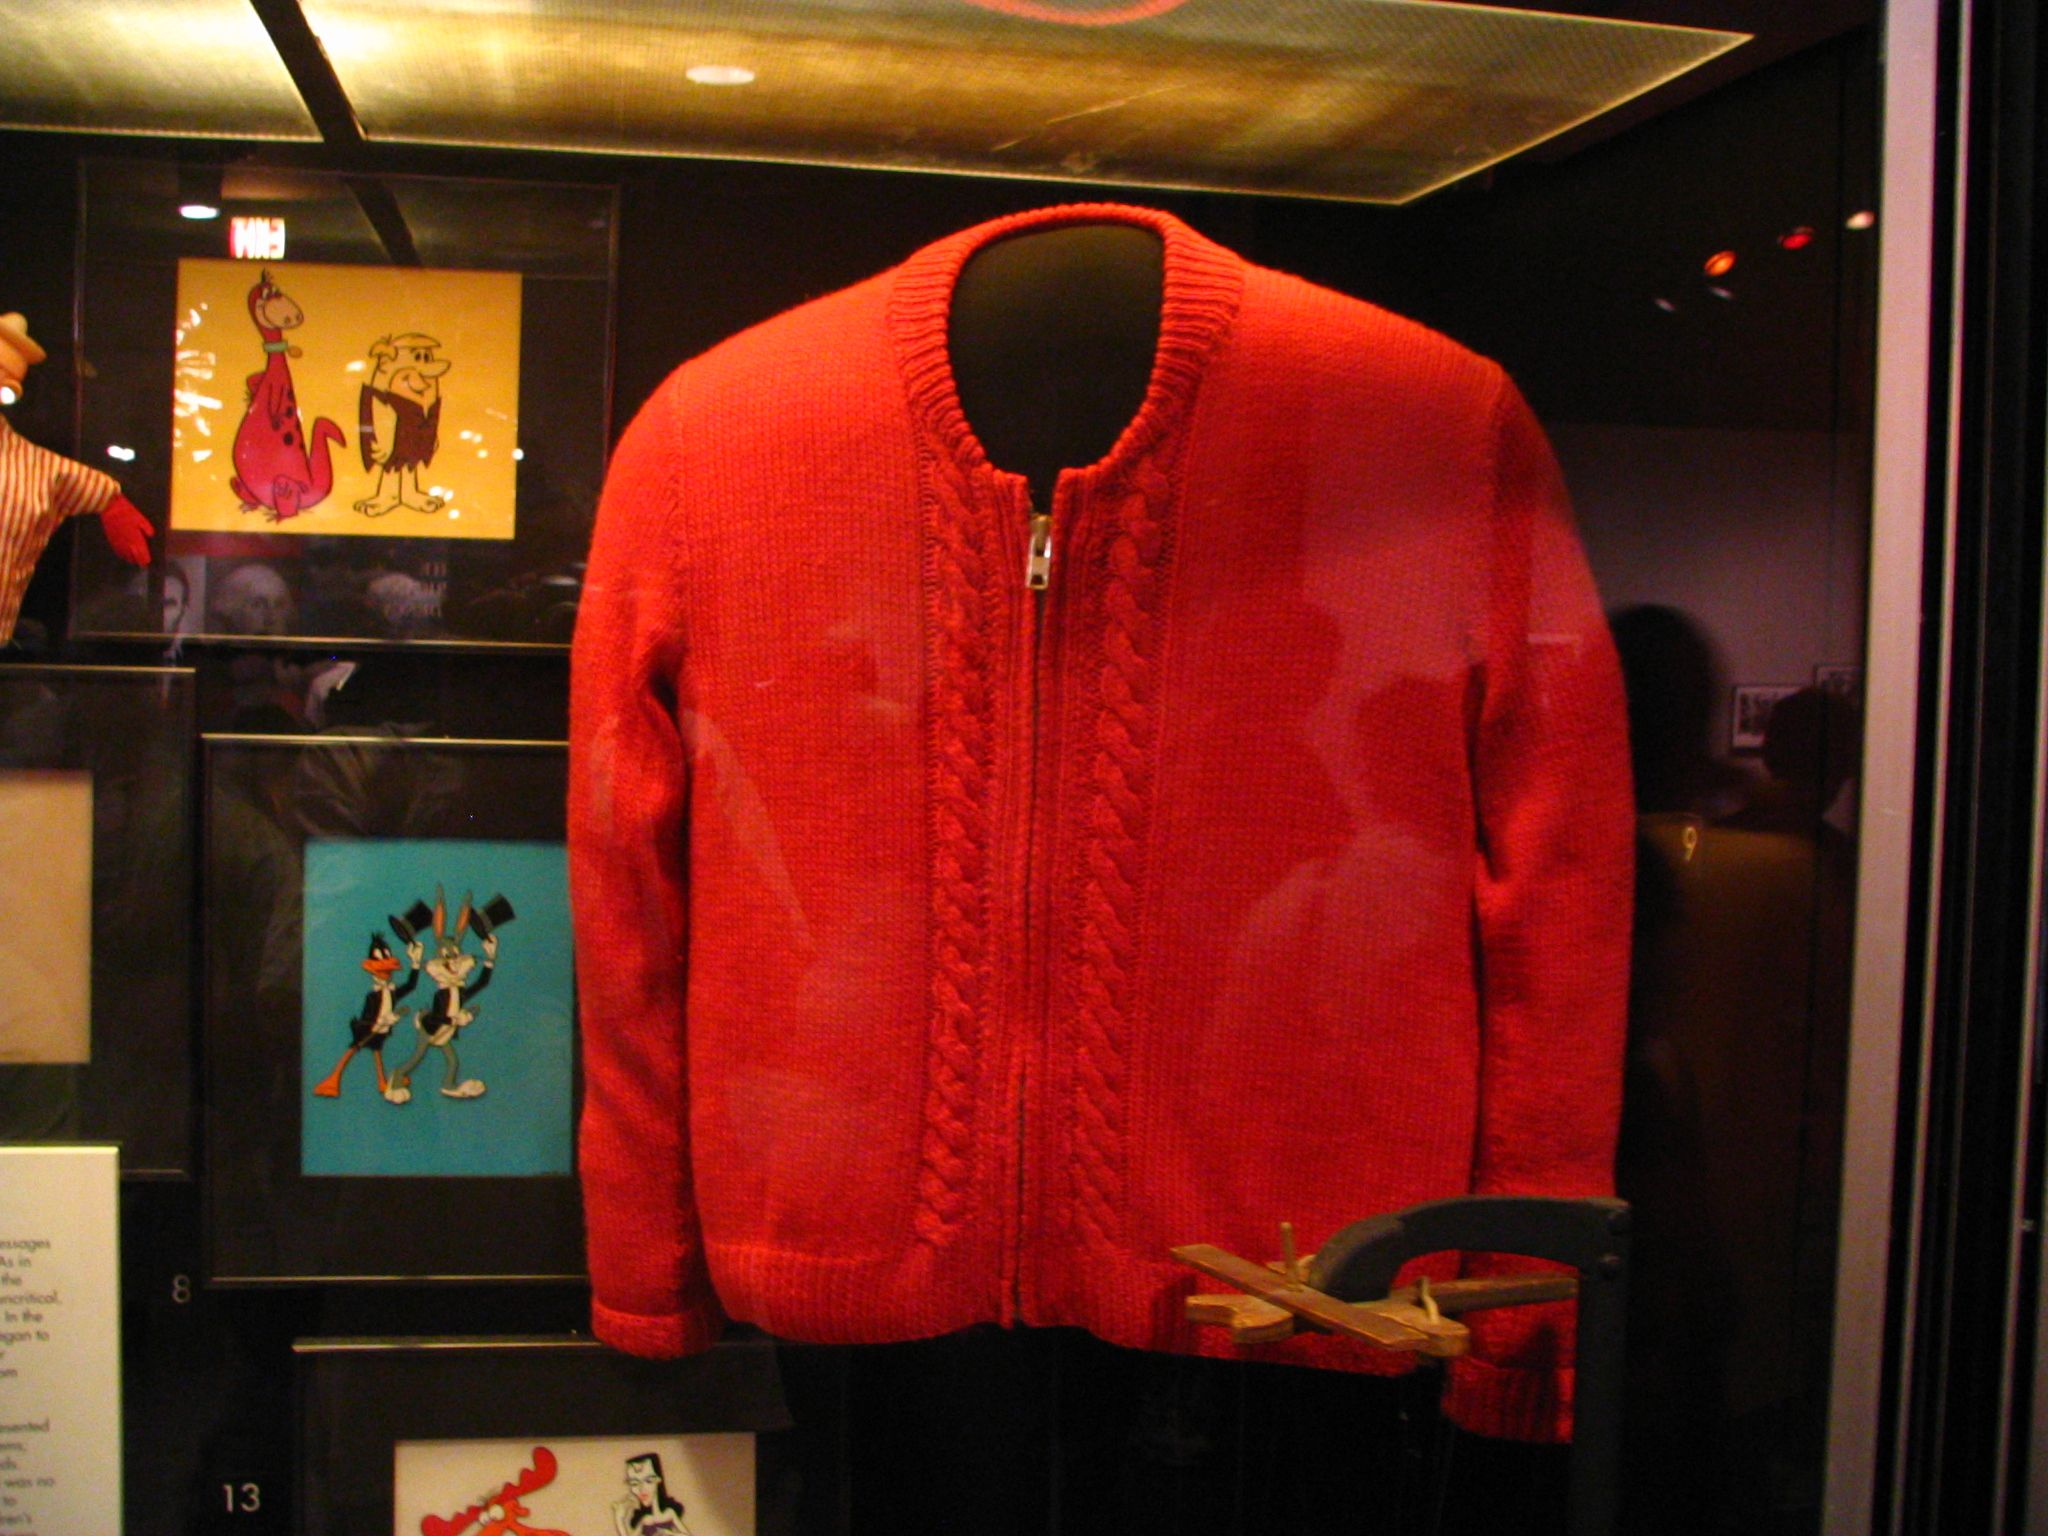 Mister Rogers Sweater On Display At The Smithsonian Mr Rogers Fred Rogers Mister Rogers Neighborhood